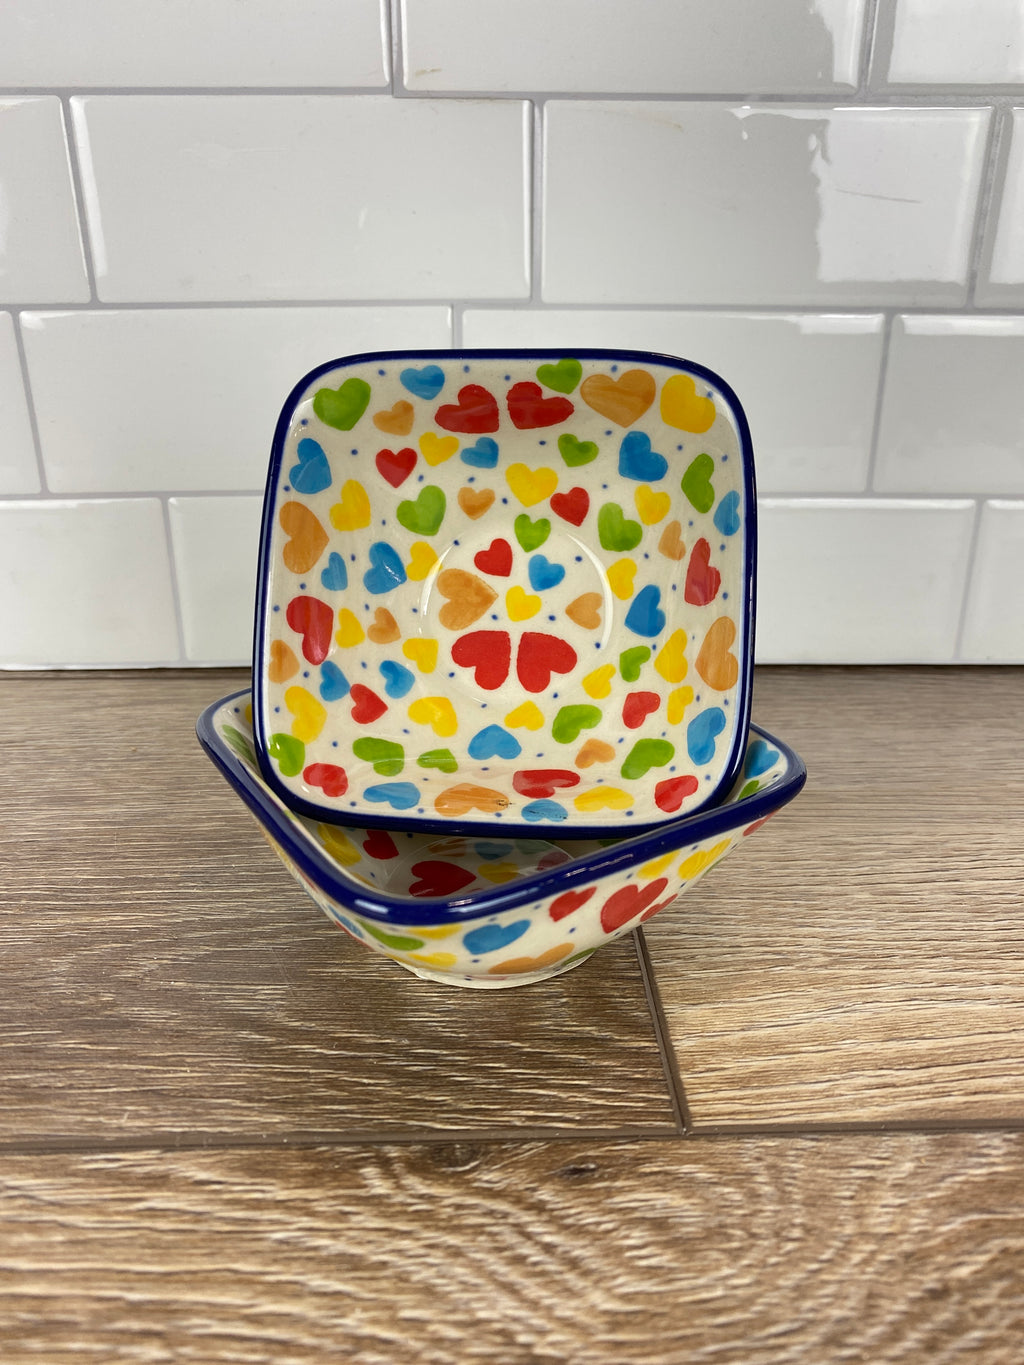 Small Square Unikat Bowl - Shape D11 - Pattern U4833